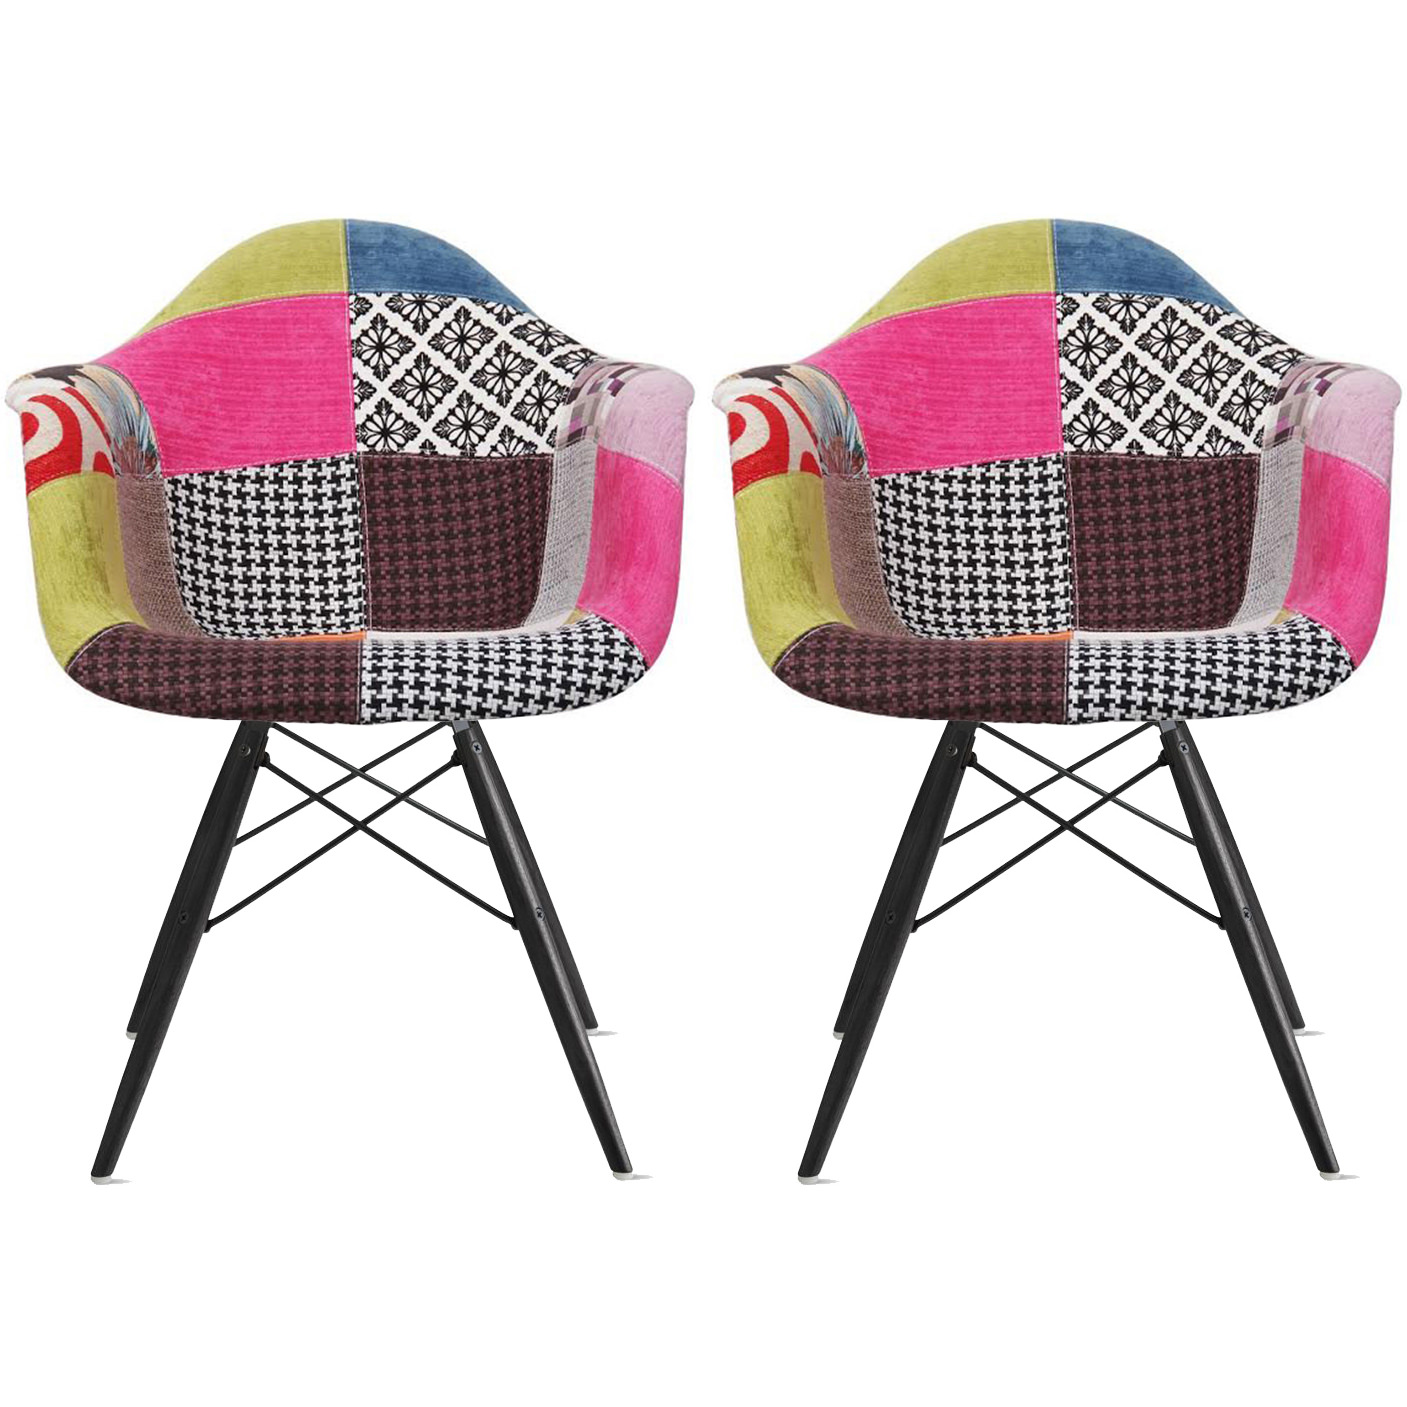 2xhome - Set of 2 (Two) Multi-color Ann - Modern Upholstered Style Armchair Fabric Chair Patchwork Multi-Pattern Black Wood Leg Dining Room Chair With Arm